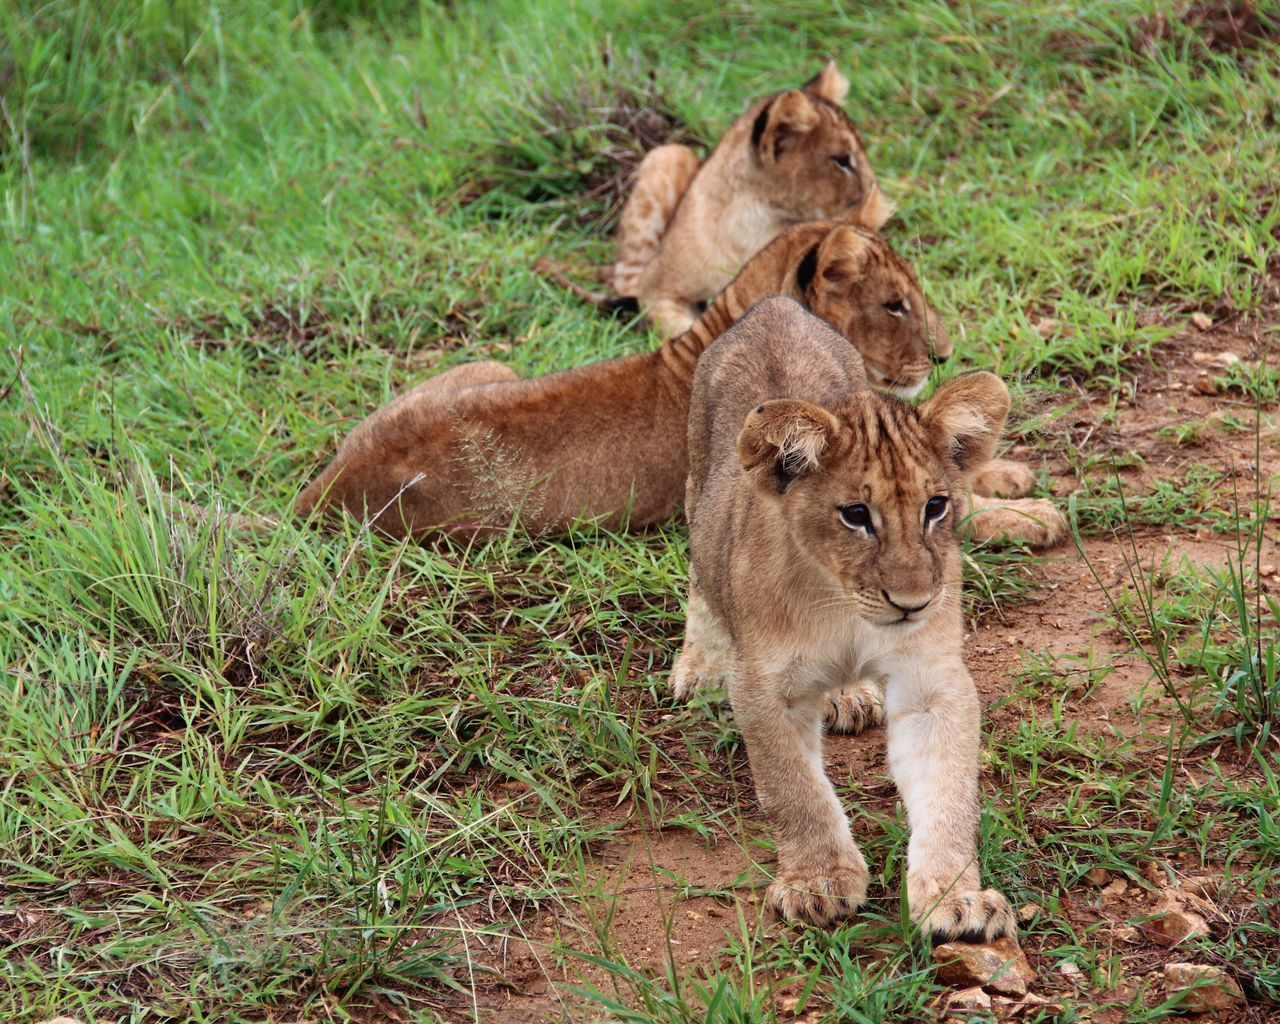 Friendly predators Cute But Deadly  Lion Animals In The Wild Animal Wildlife Simba Tanzania Africa Lion Cub